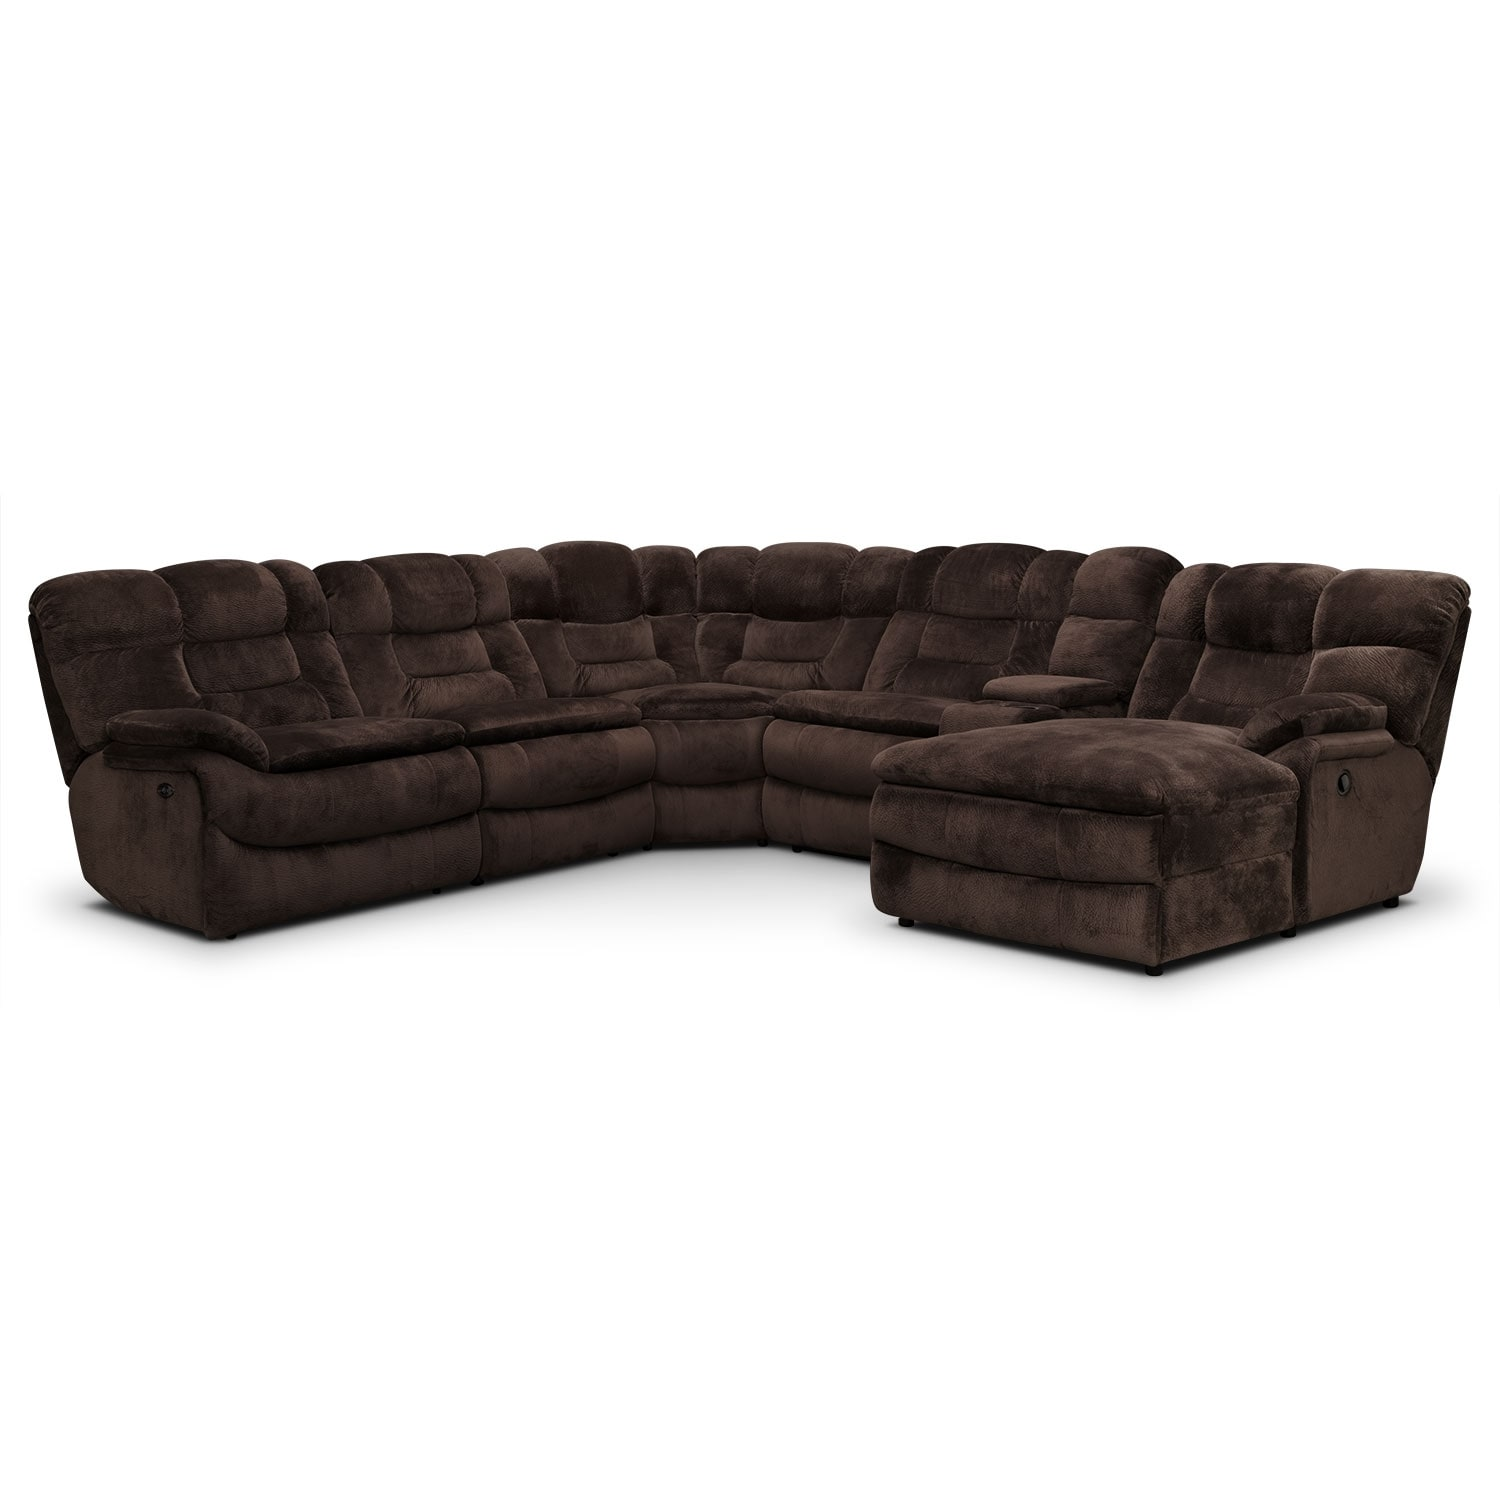 Big Softie 6-Piece Power Reclining Sectional with Right-Facing Chaise - Chocolate